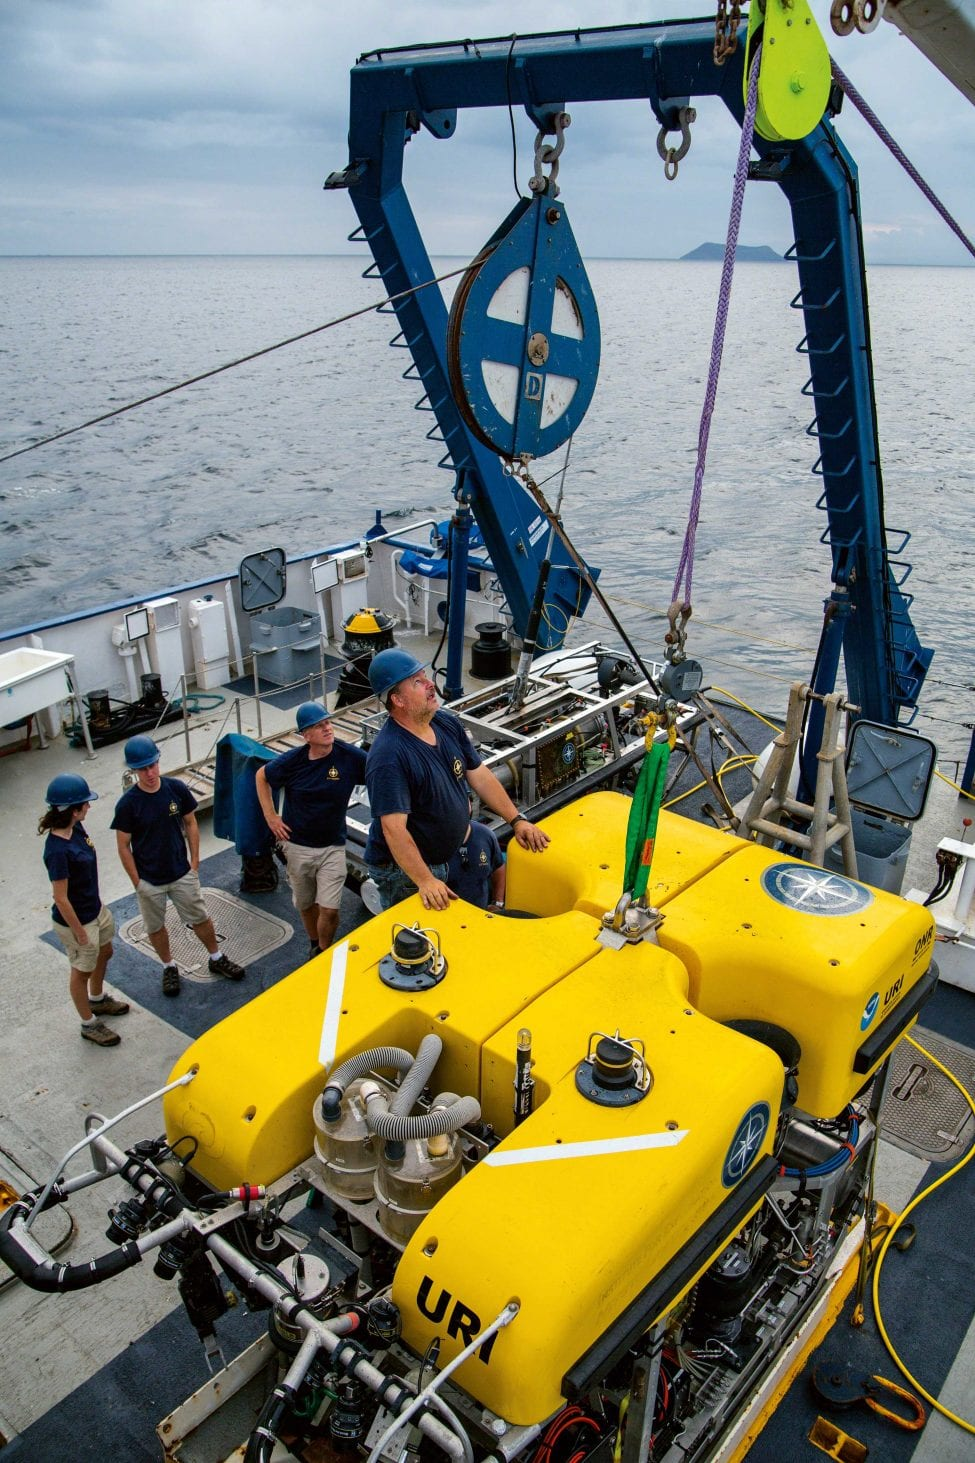 A host of technologies, like ROVs, allow scientists to explore deep-sea habitats. This kind of capacity is vital to monitor changes to life in the deepest reaches. While these parts of the oceans remain relatively unexplored, human exploitation in the form of deep-sea mining and fishing is quickly catching up to even the hardest-to-reach regions.<br />